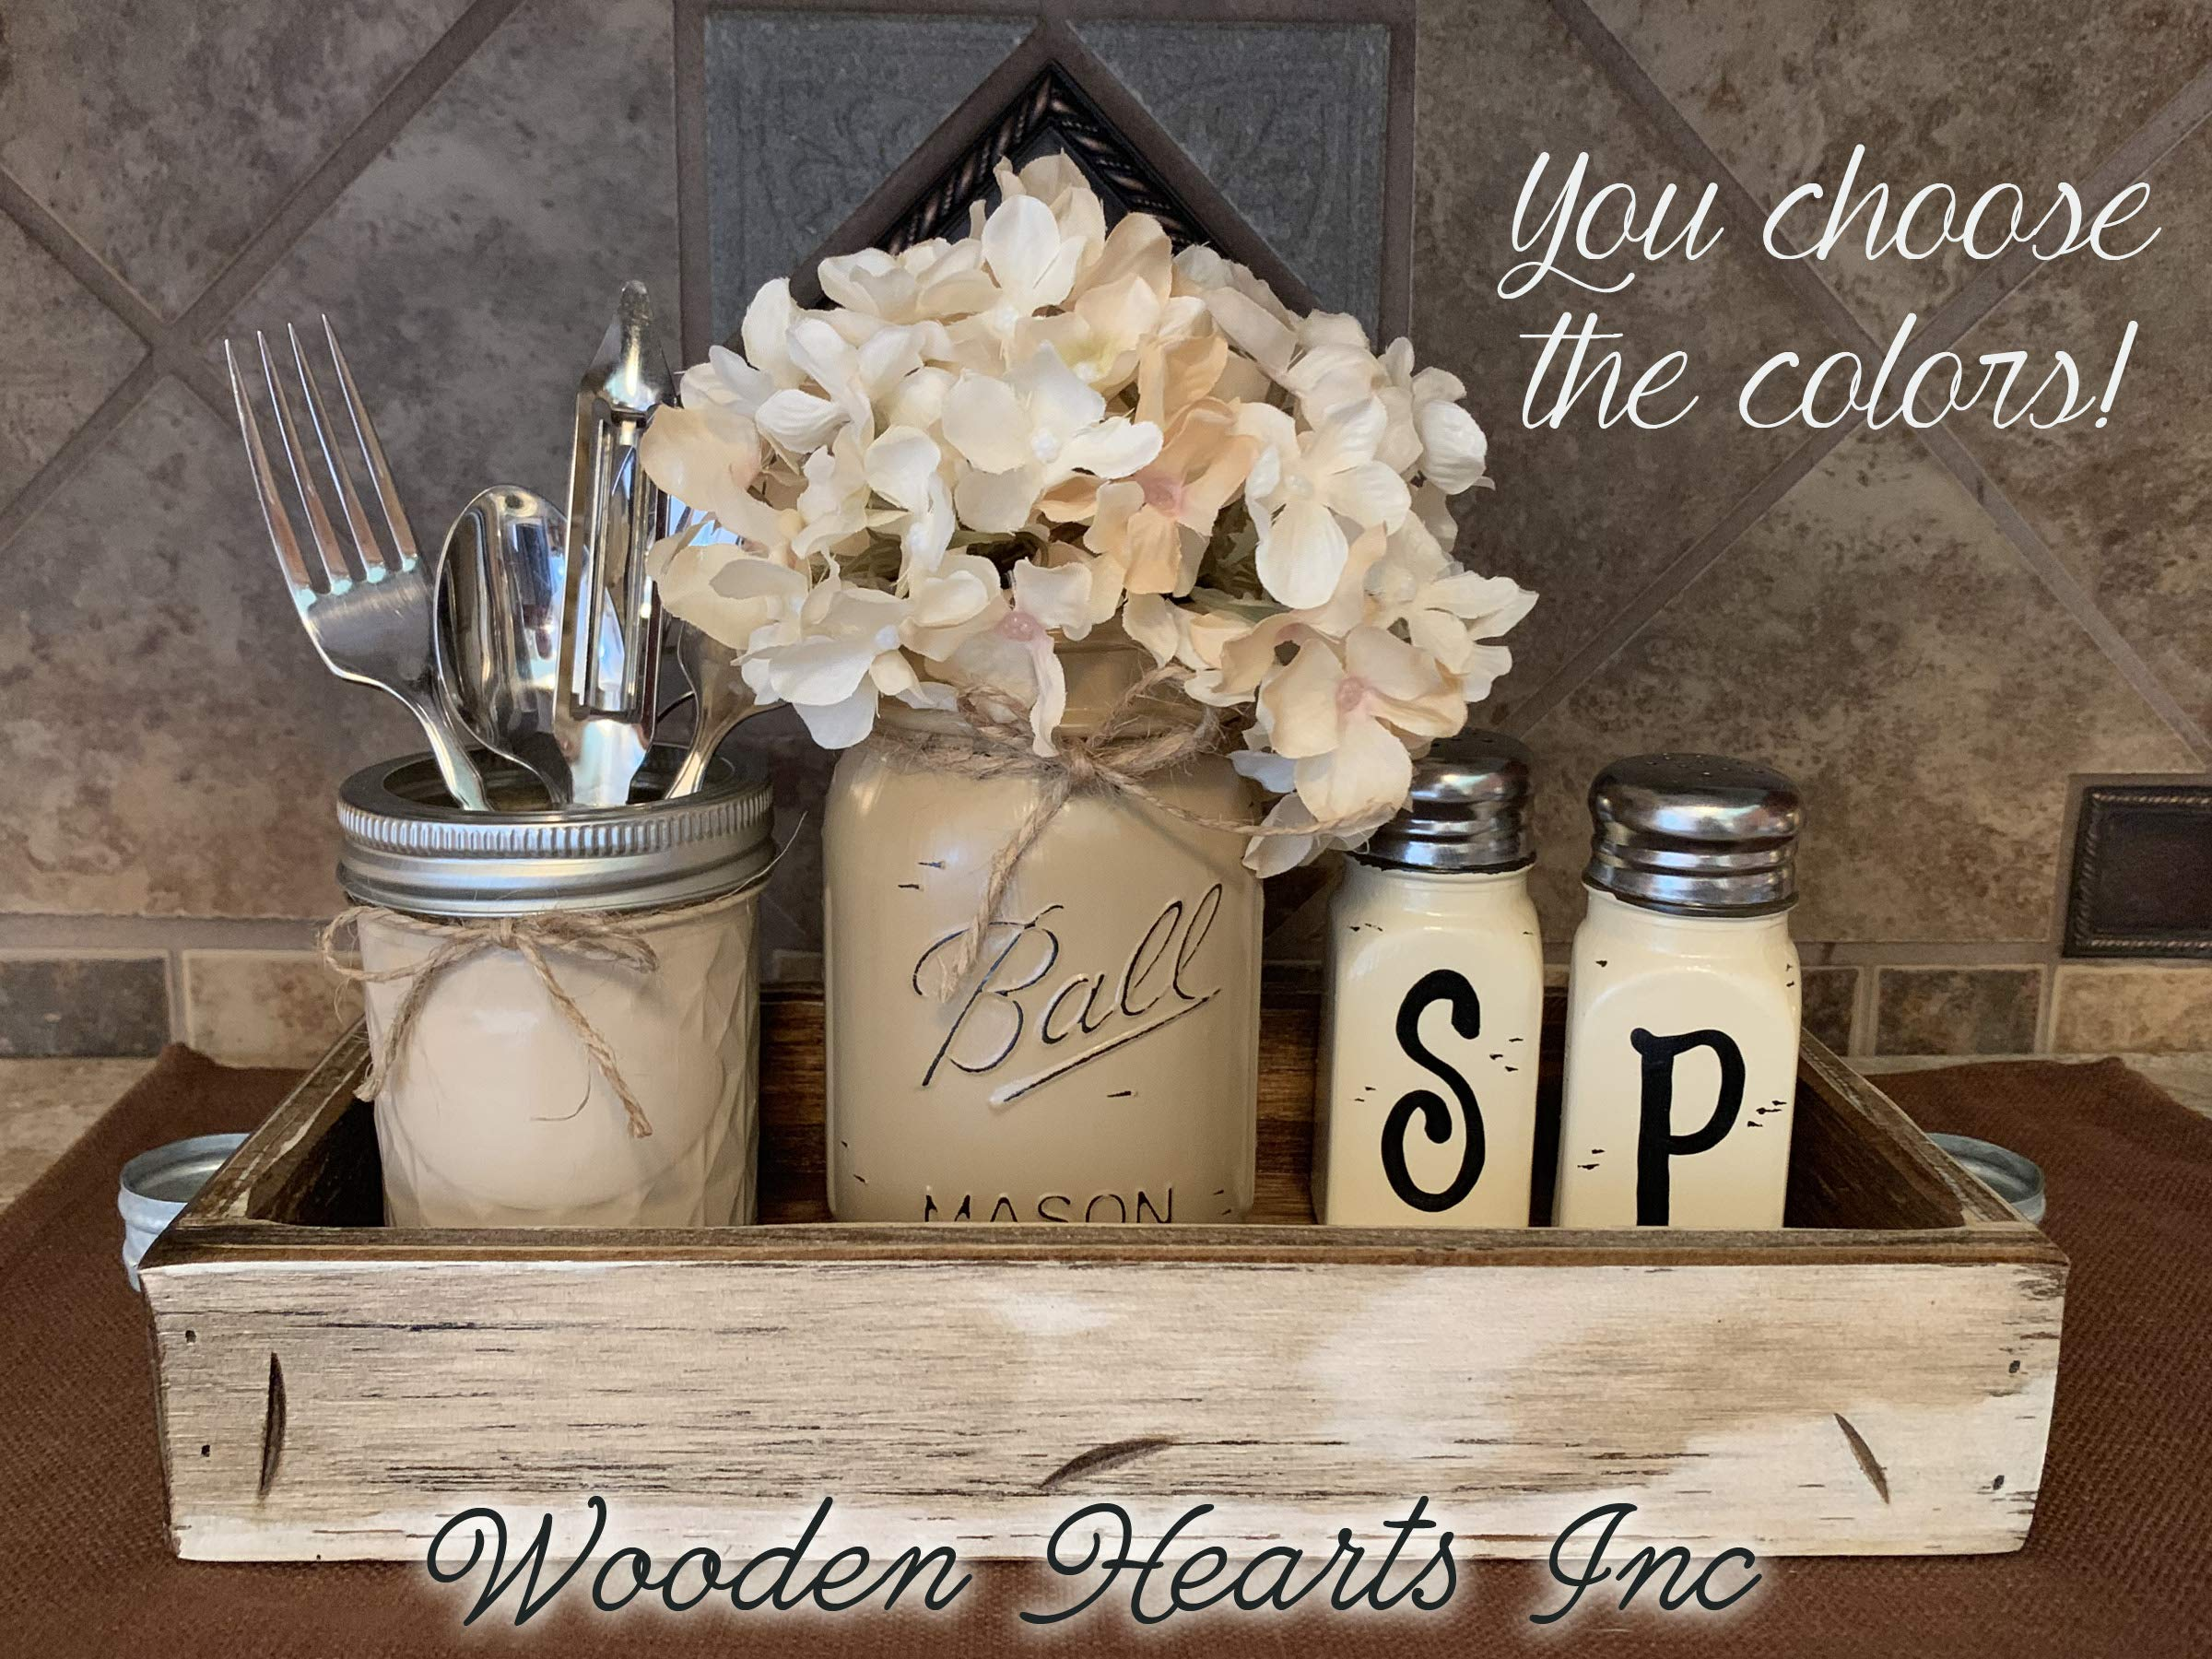 Ball Mason Jar KITCHEN Table Centerpiece SET in Antique Rustic Tray ~Salt and Pepper Shakers, Pint Vase Jar with FLOWER~Distressed Painted Jars, Accessory Holder, Green Brown Cream White Tan Blue by Wooden Hearts